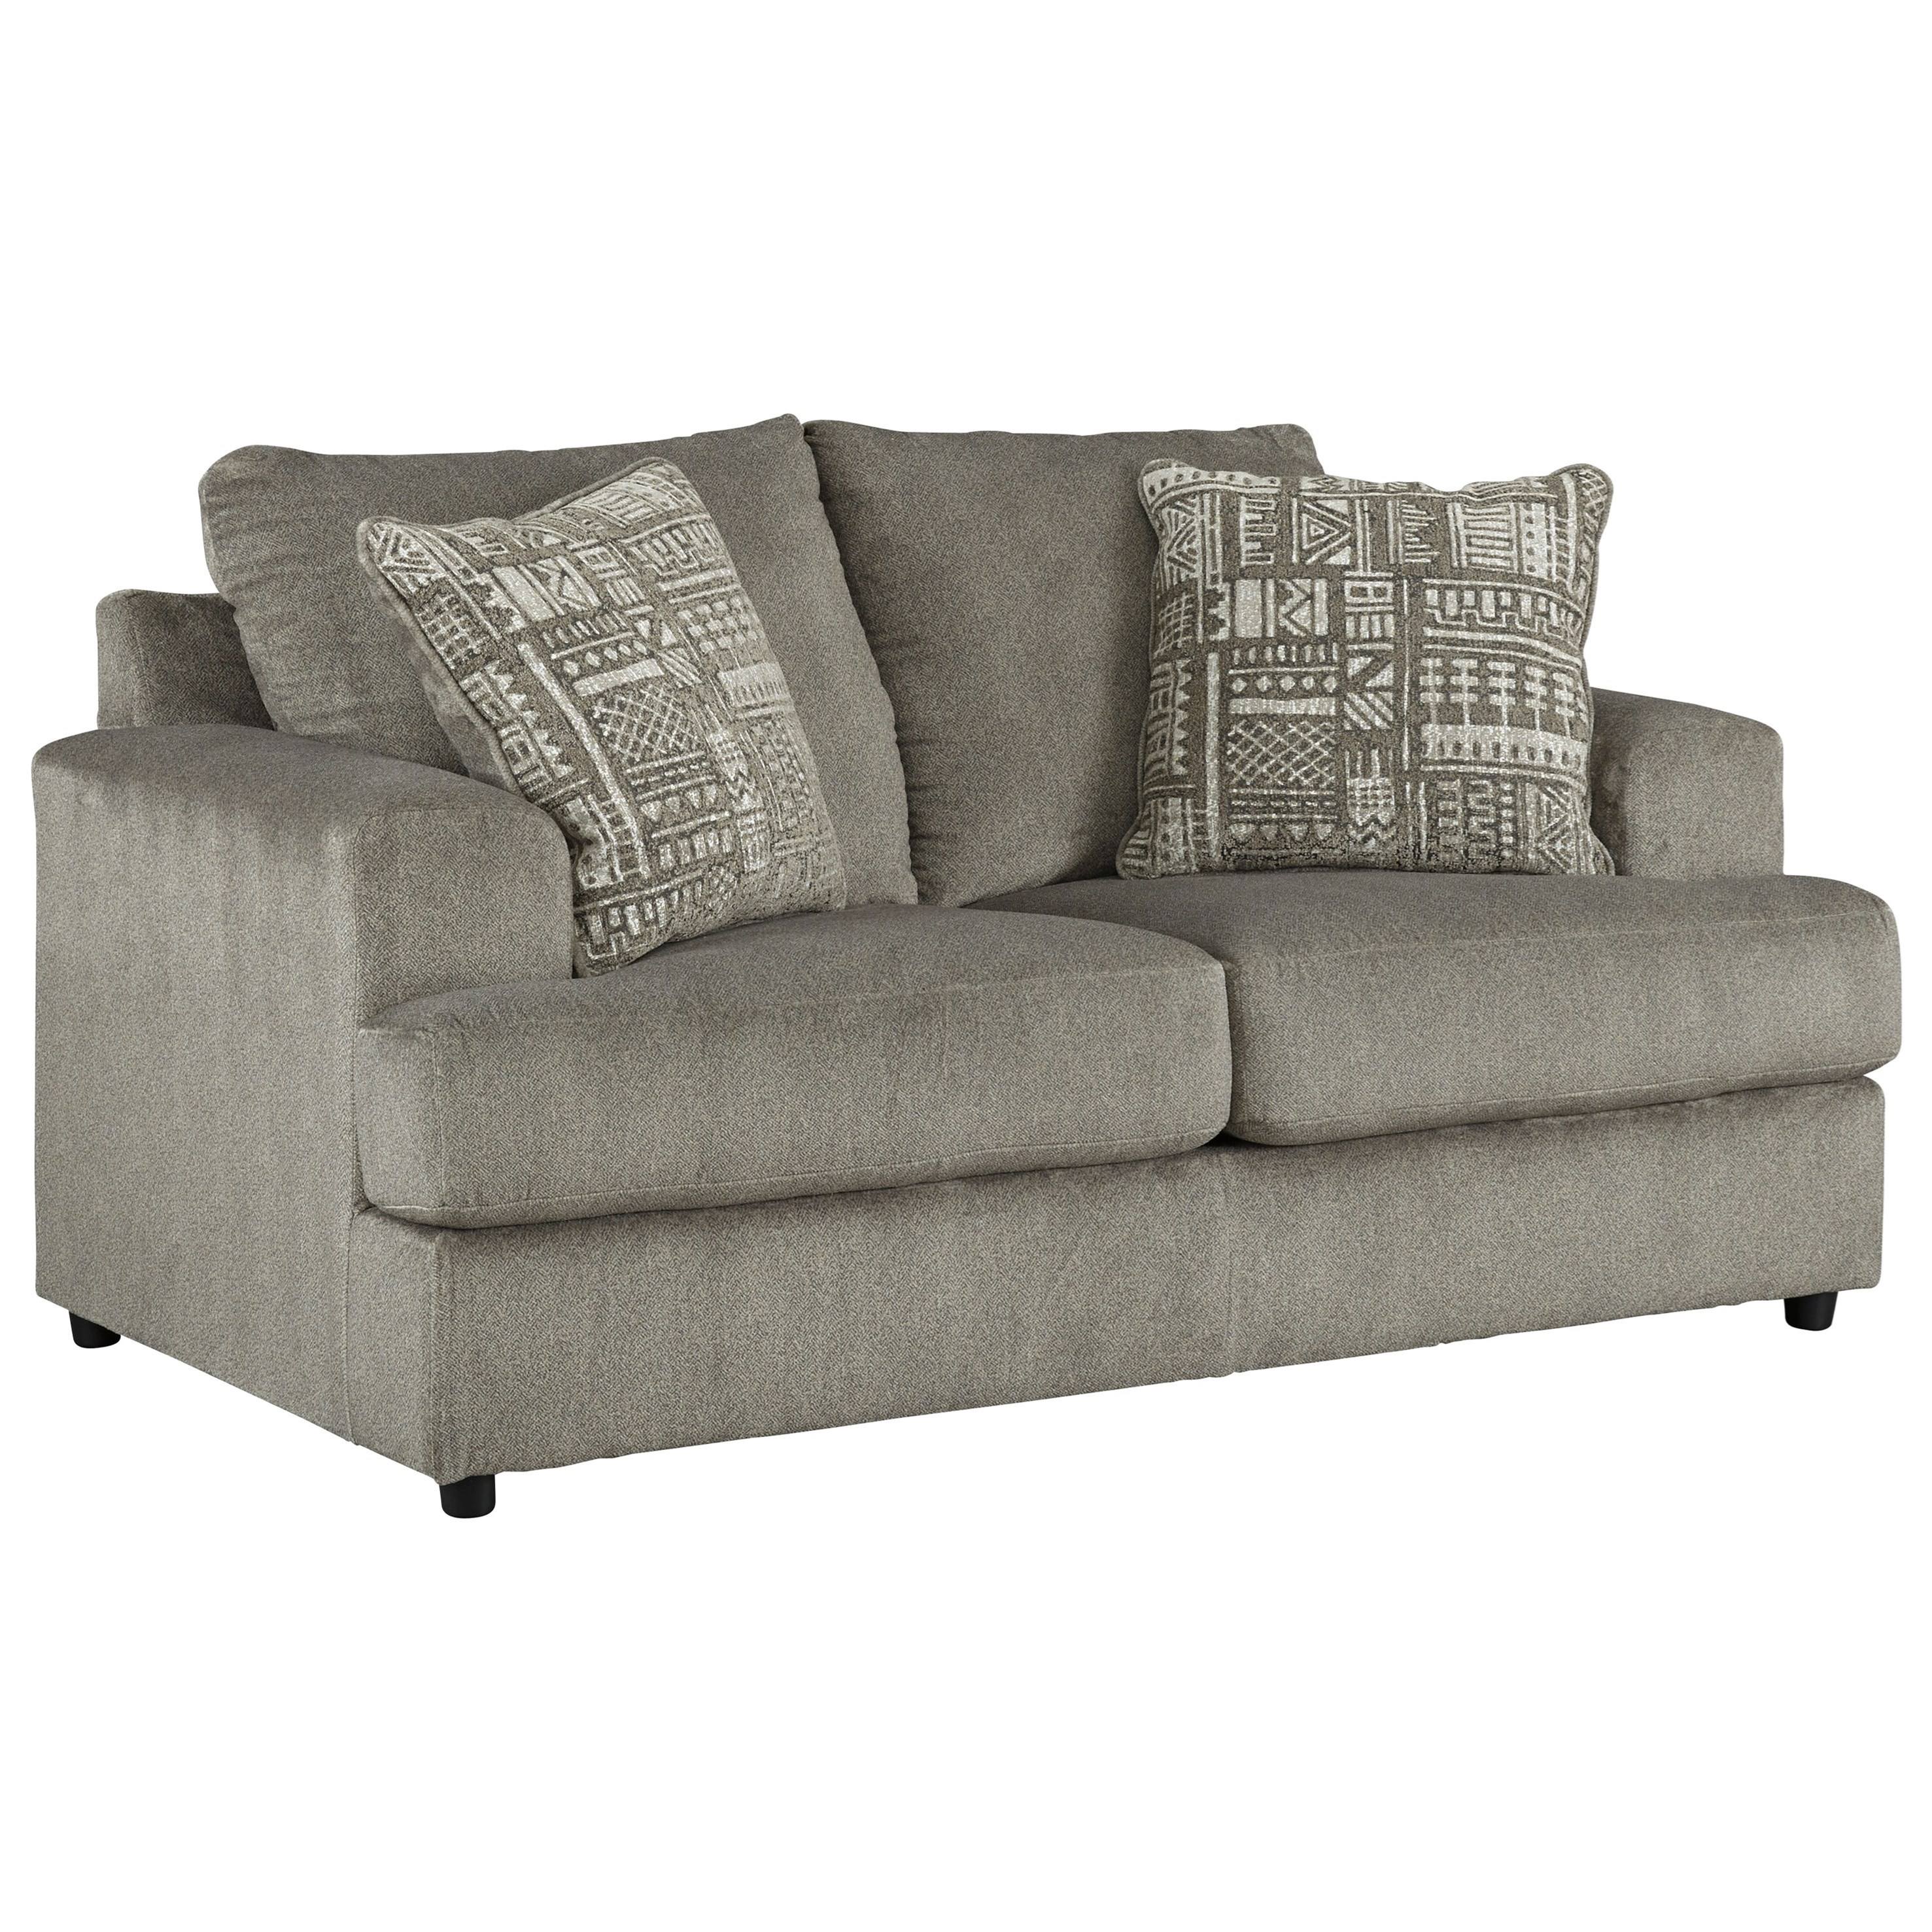 Soletren Loveseat by Signature Design by Ashley at Beck's Furniture